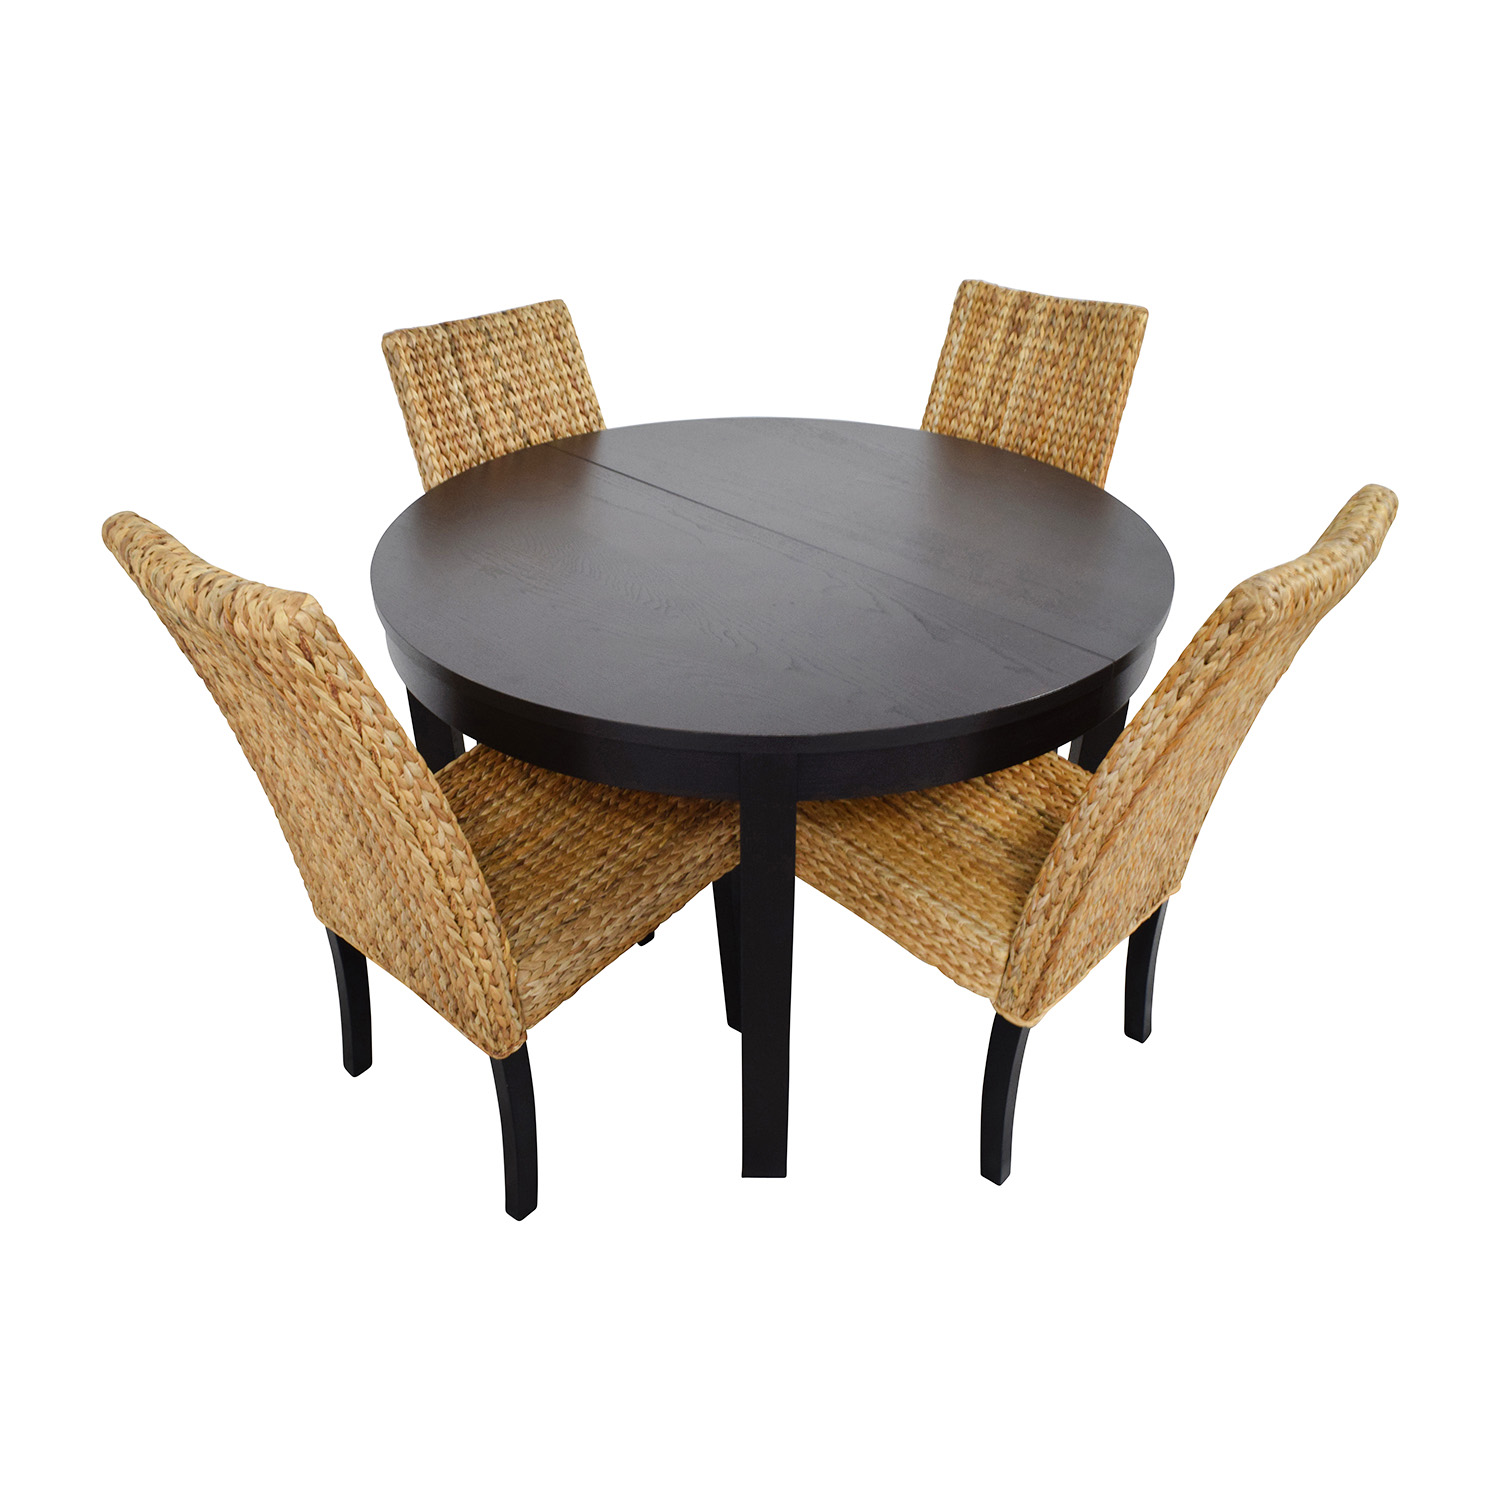 66 off macy 39 s ikea round black dining table set with. Black Bedroom Furniture Sets. Home Design Ideas